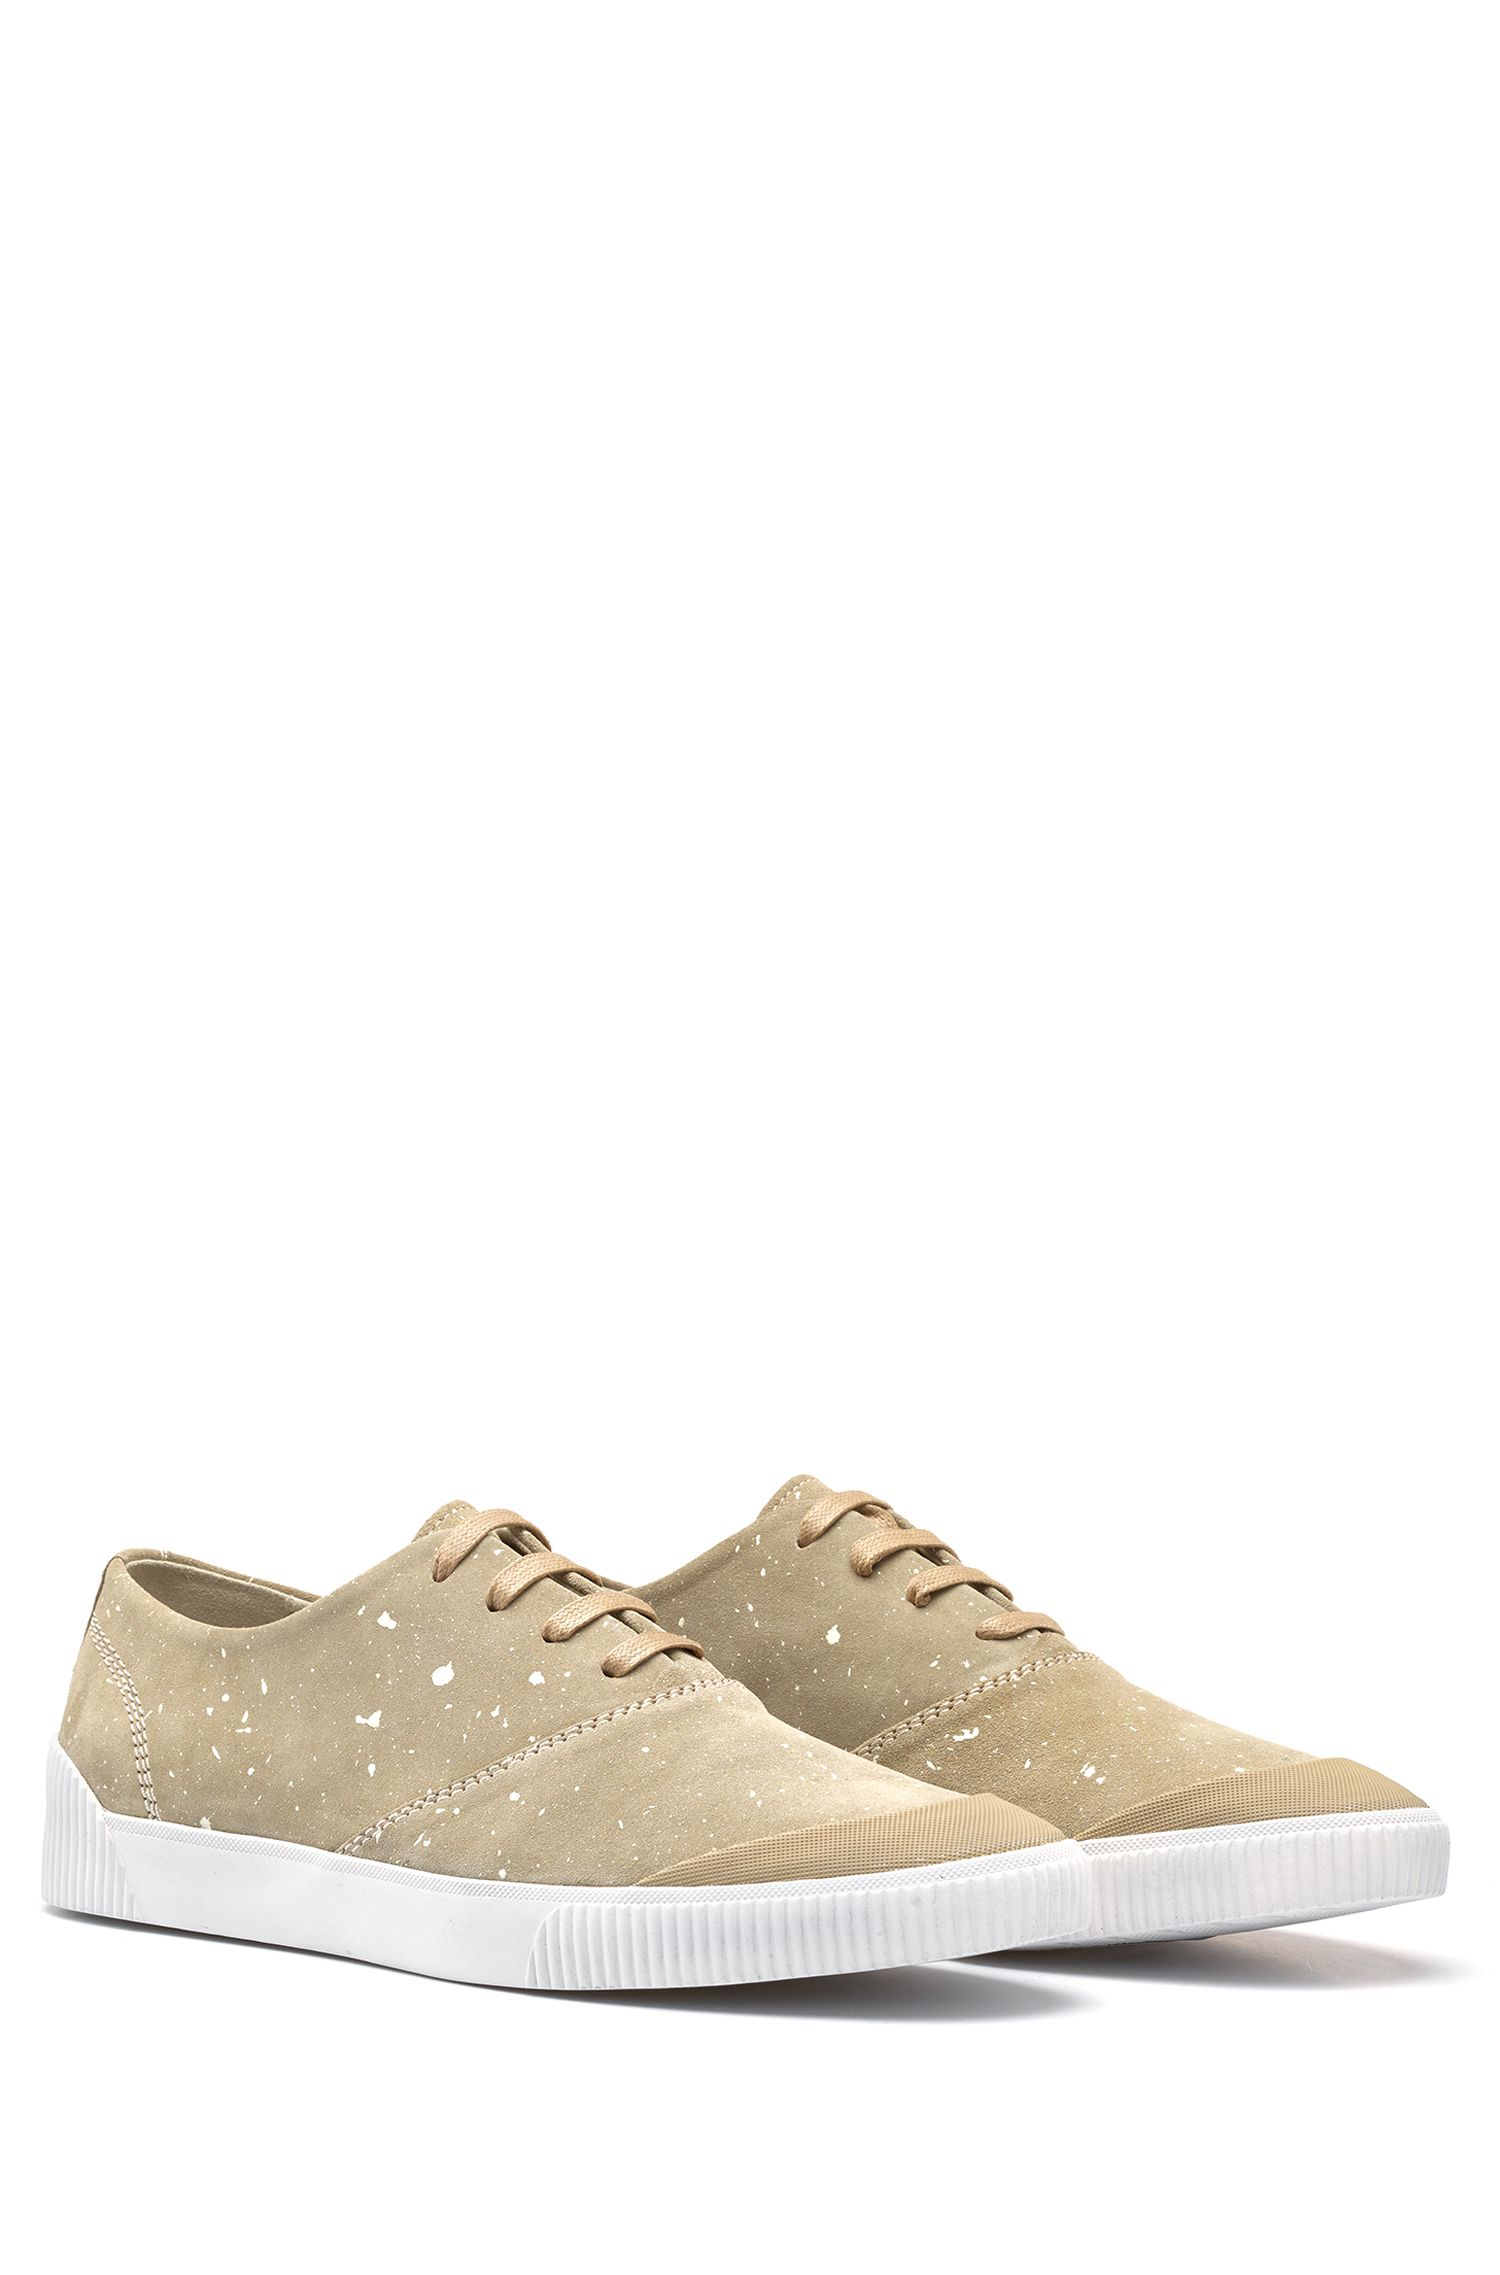 Paint Splattered Suede Tennis Shoe | Zero Tenn, Beige